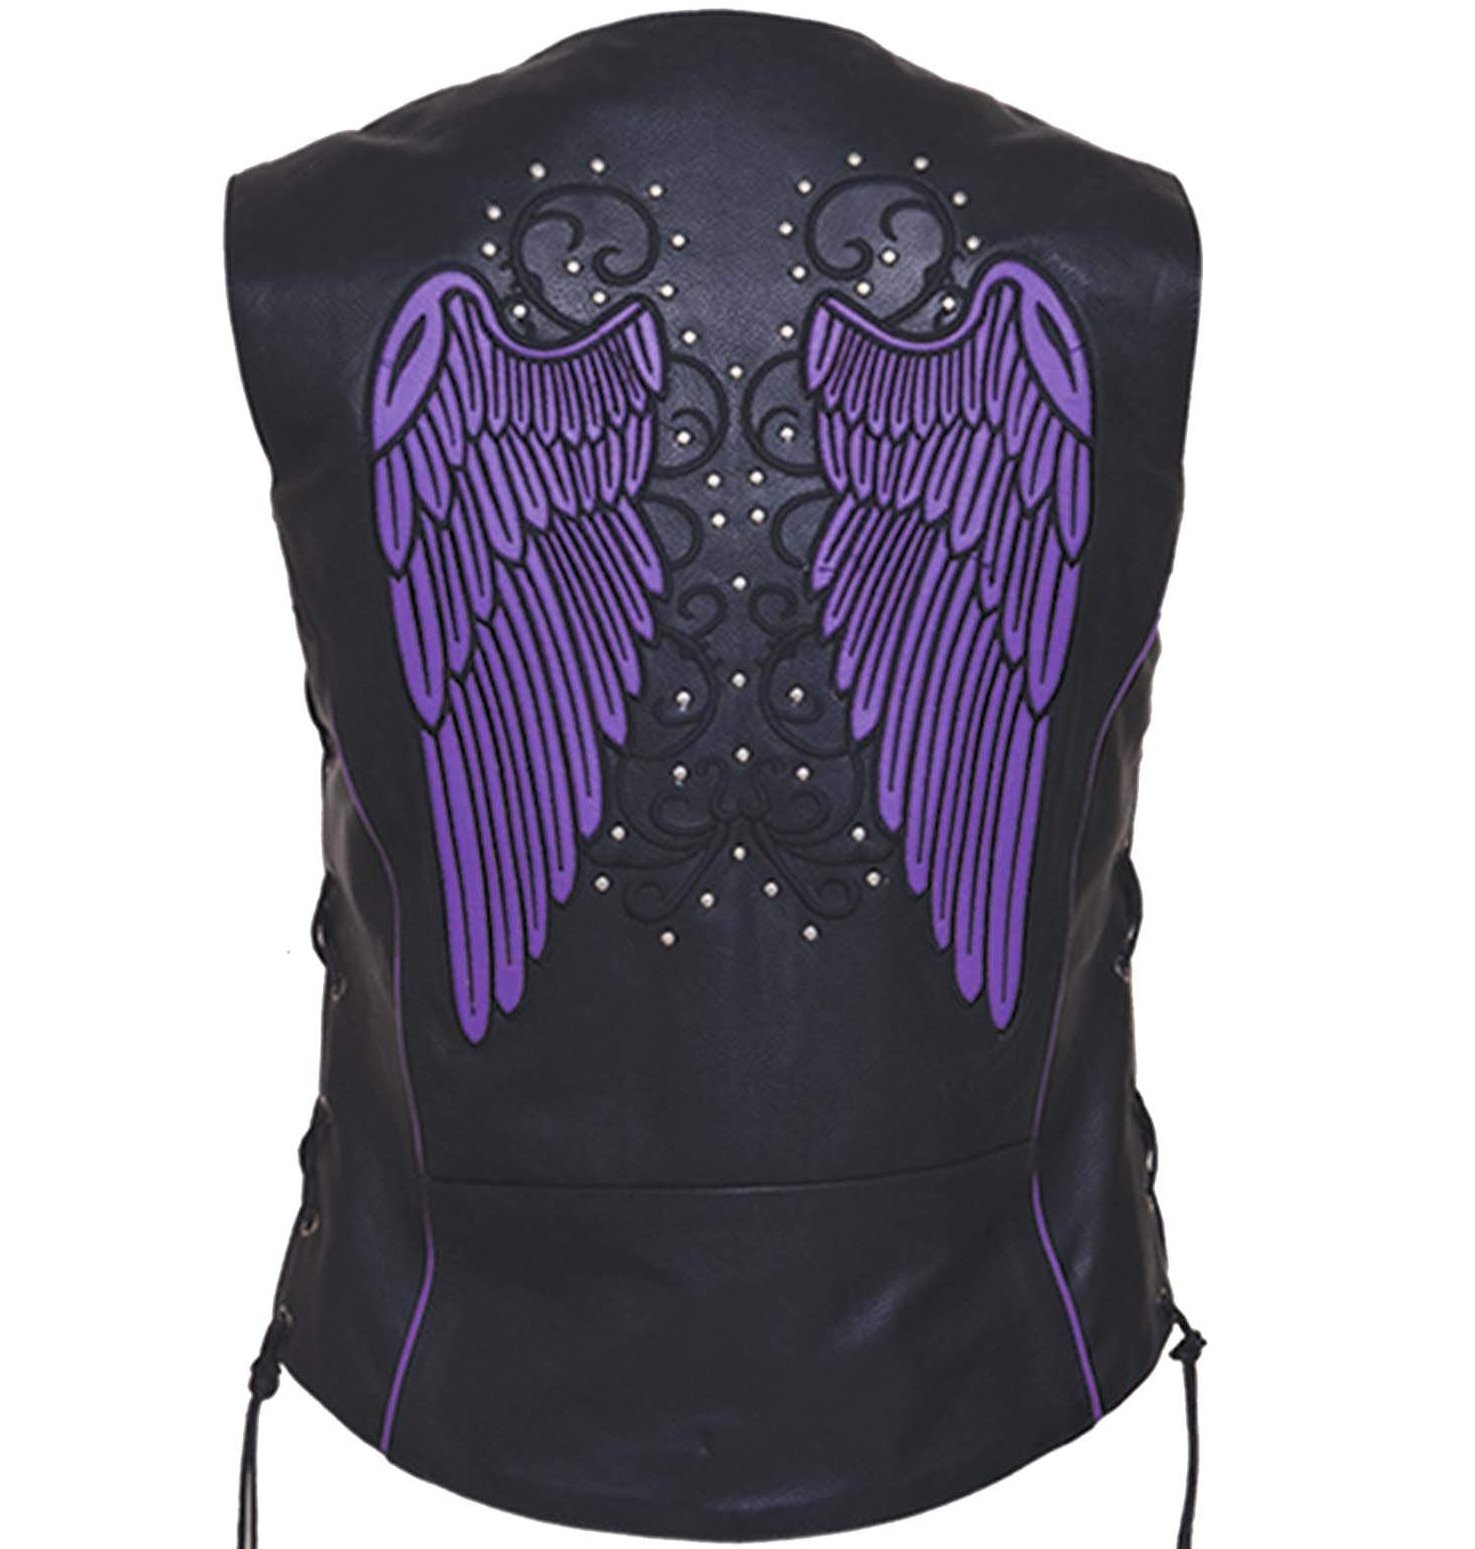 Women's Motorcycle Premium Leather Vest With Purple Wing Embroidery - SKU 6879-17-UN